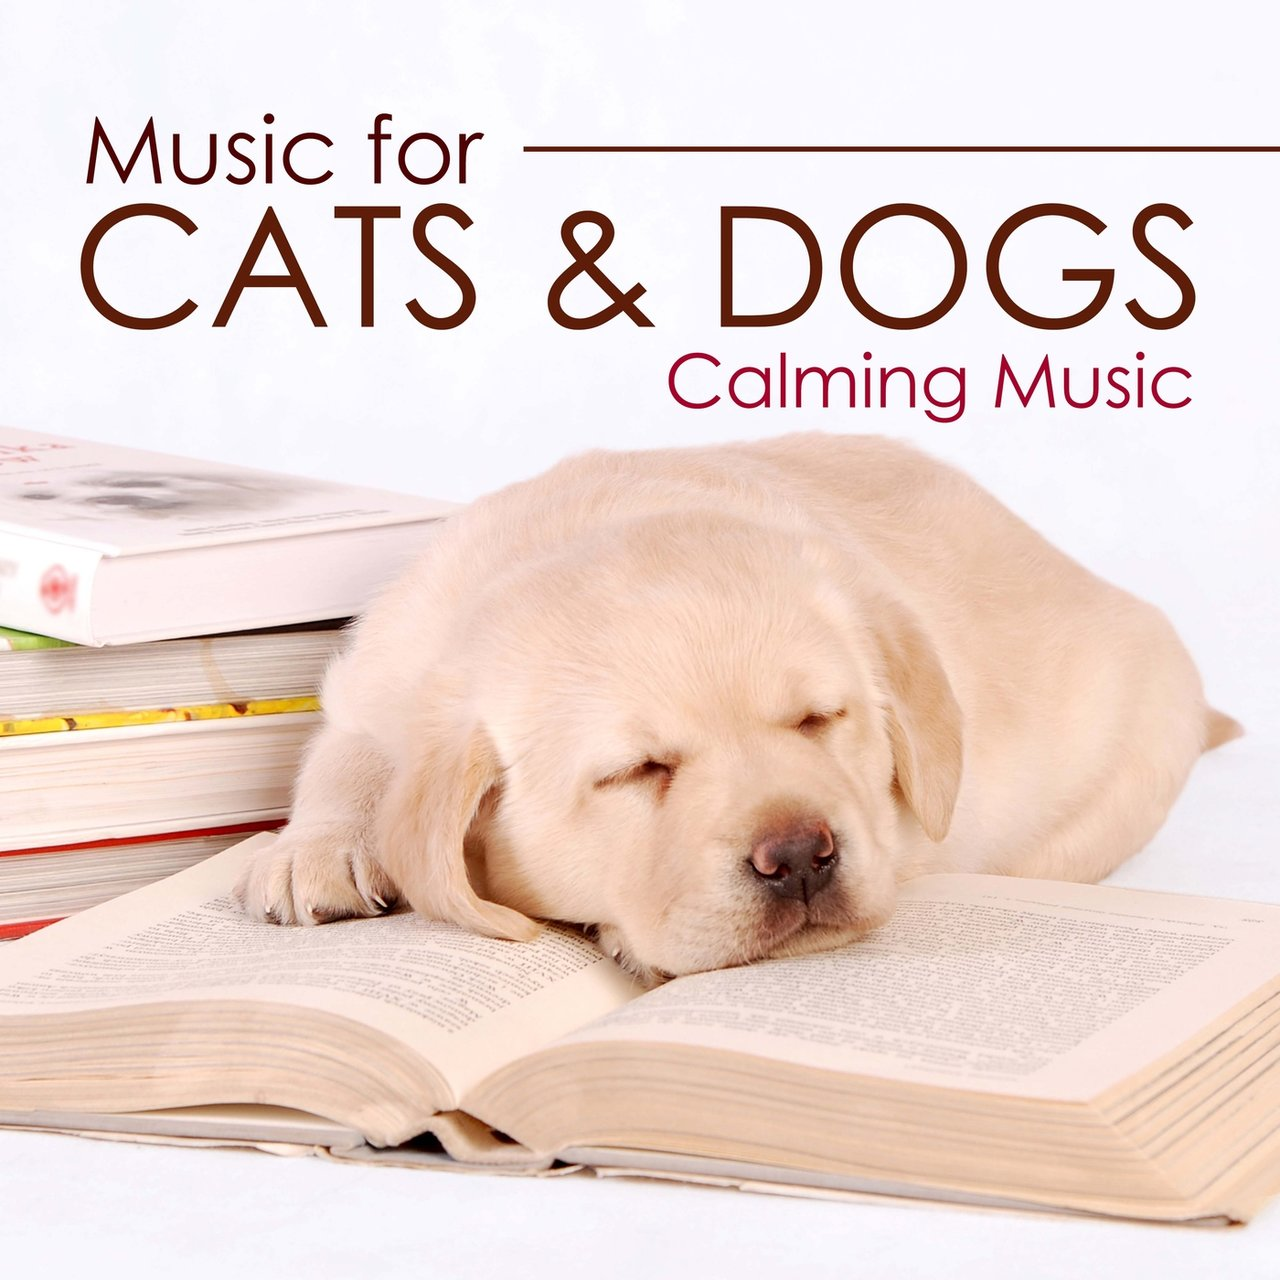 Wondrous Cats Your Pets Listen To Ambient Music Collective Dog Music Wellness Dog Ing Music Pandora Ing Dog Music Dogs Ing Music Puppies Music bark post Dog Calming Music